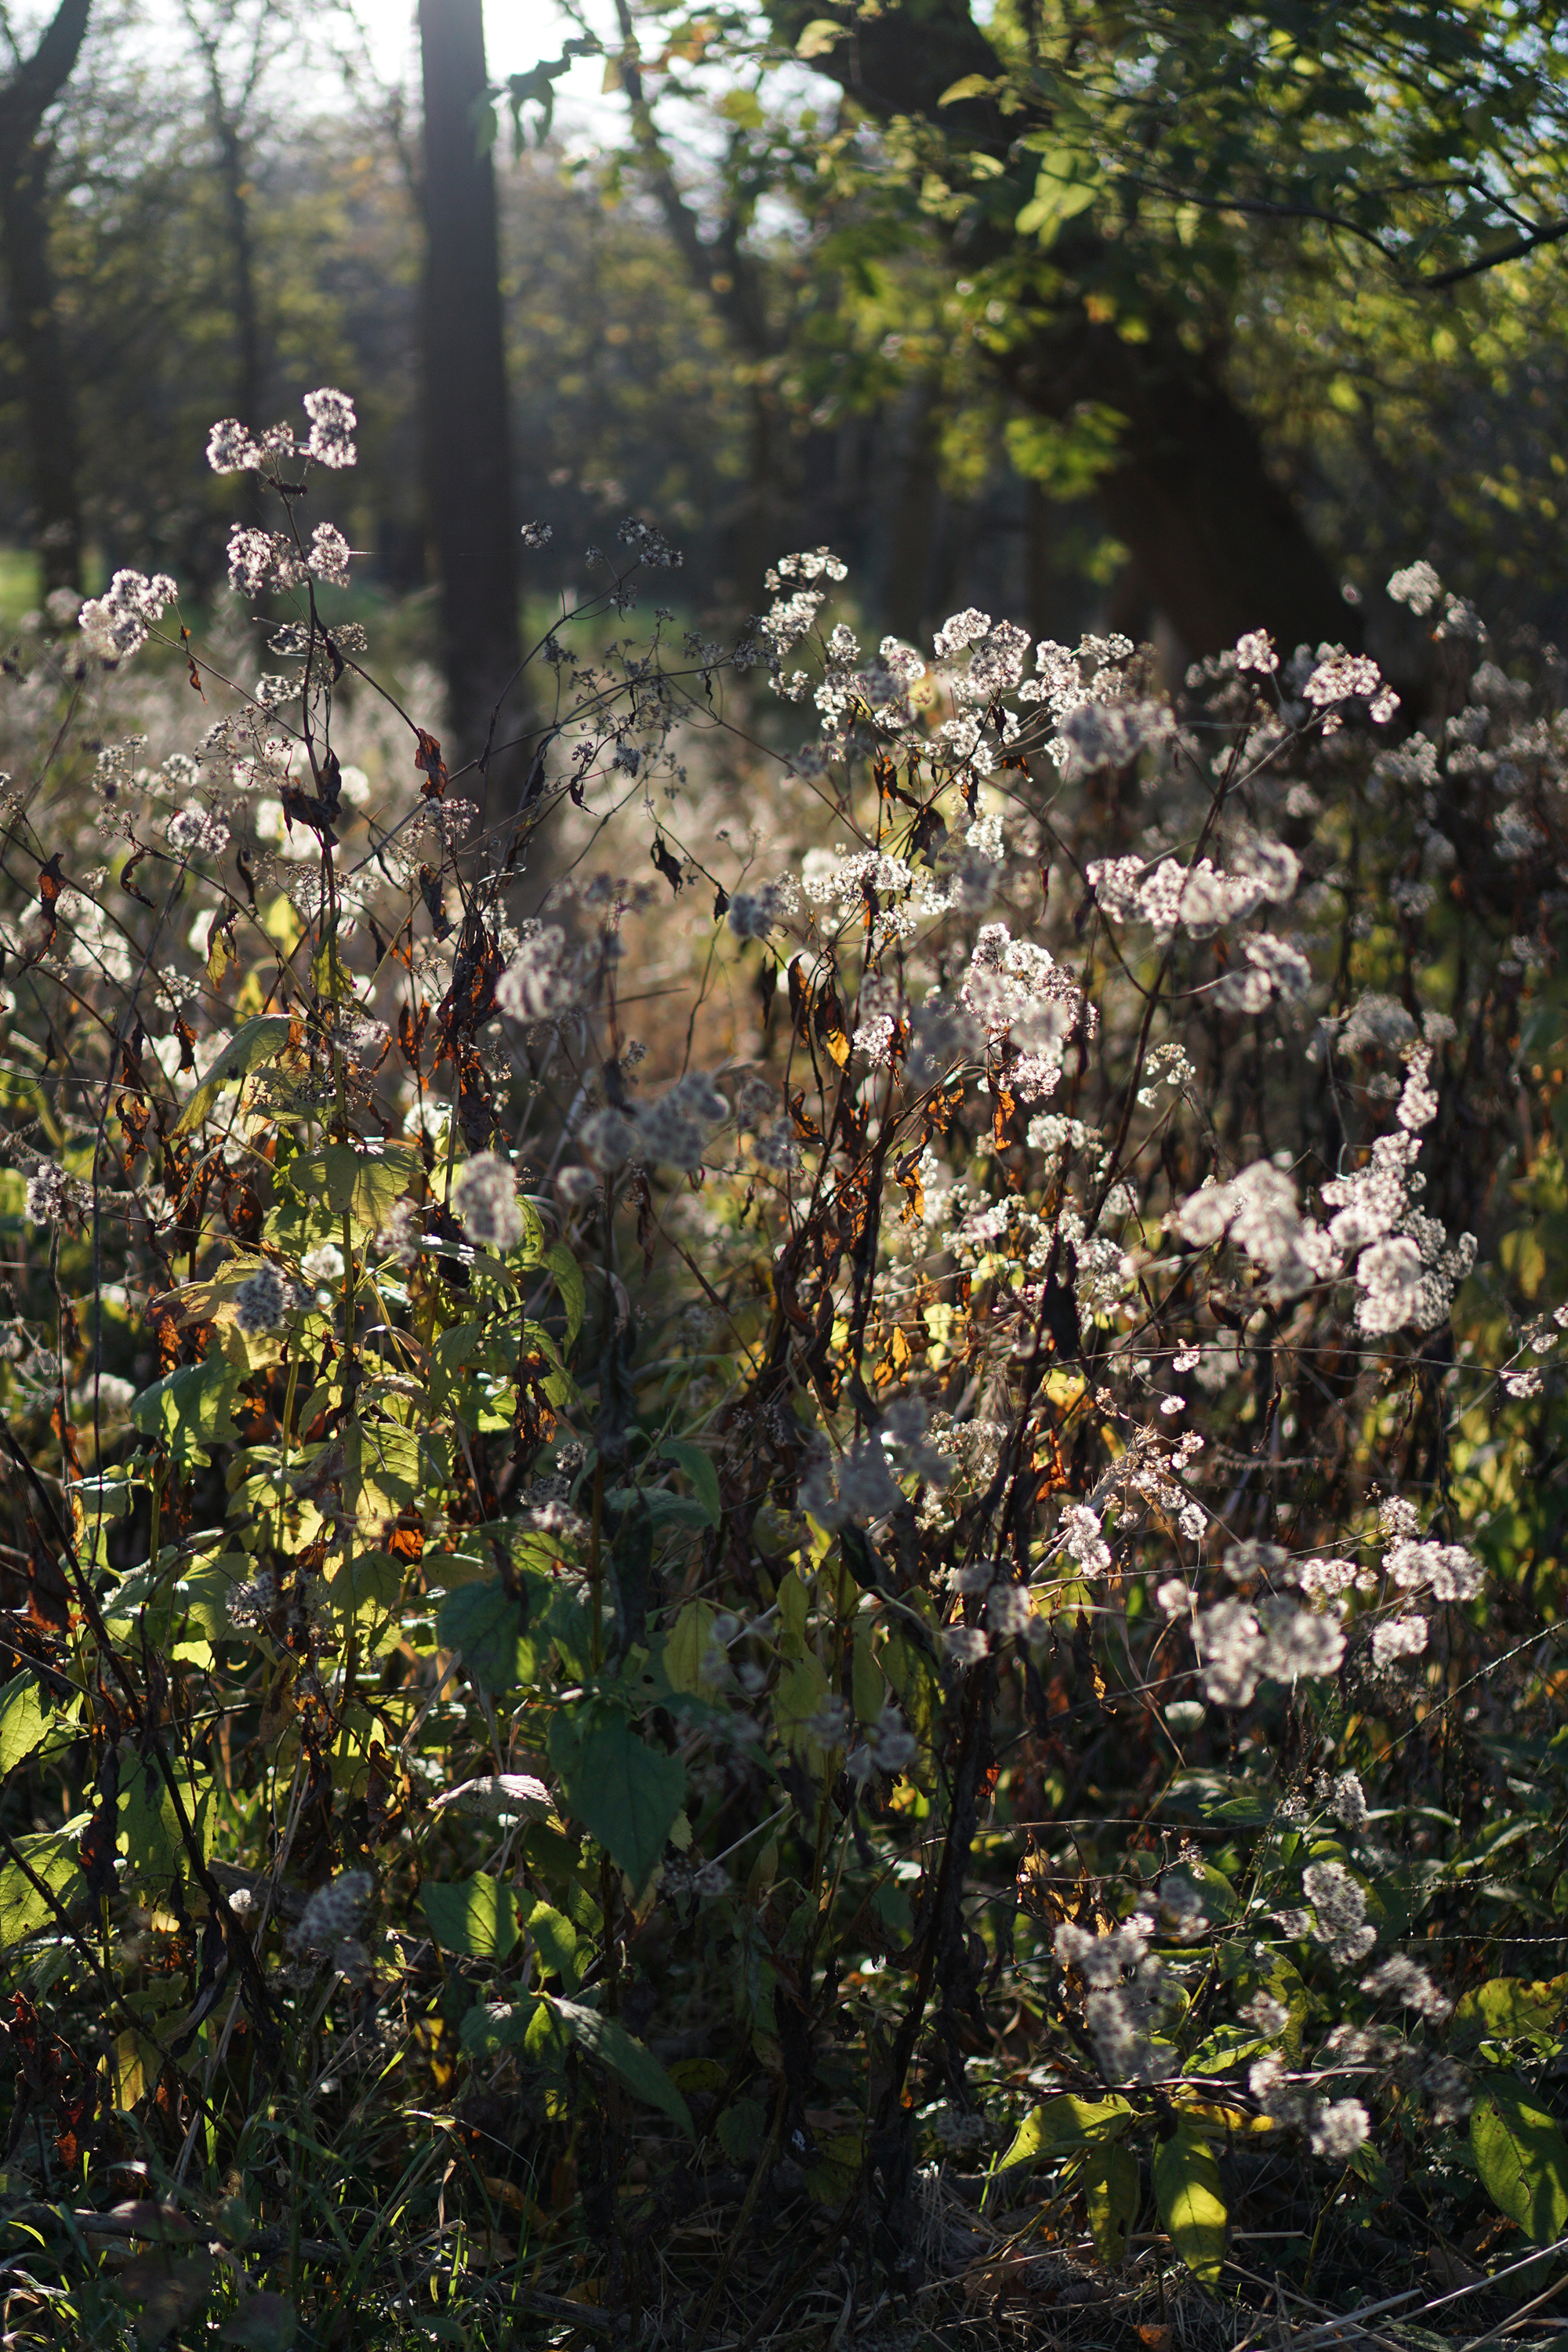 Wildflowers going to seed in the autumn light, Miami Woods, Morton Grove Illinois / Darker than Green